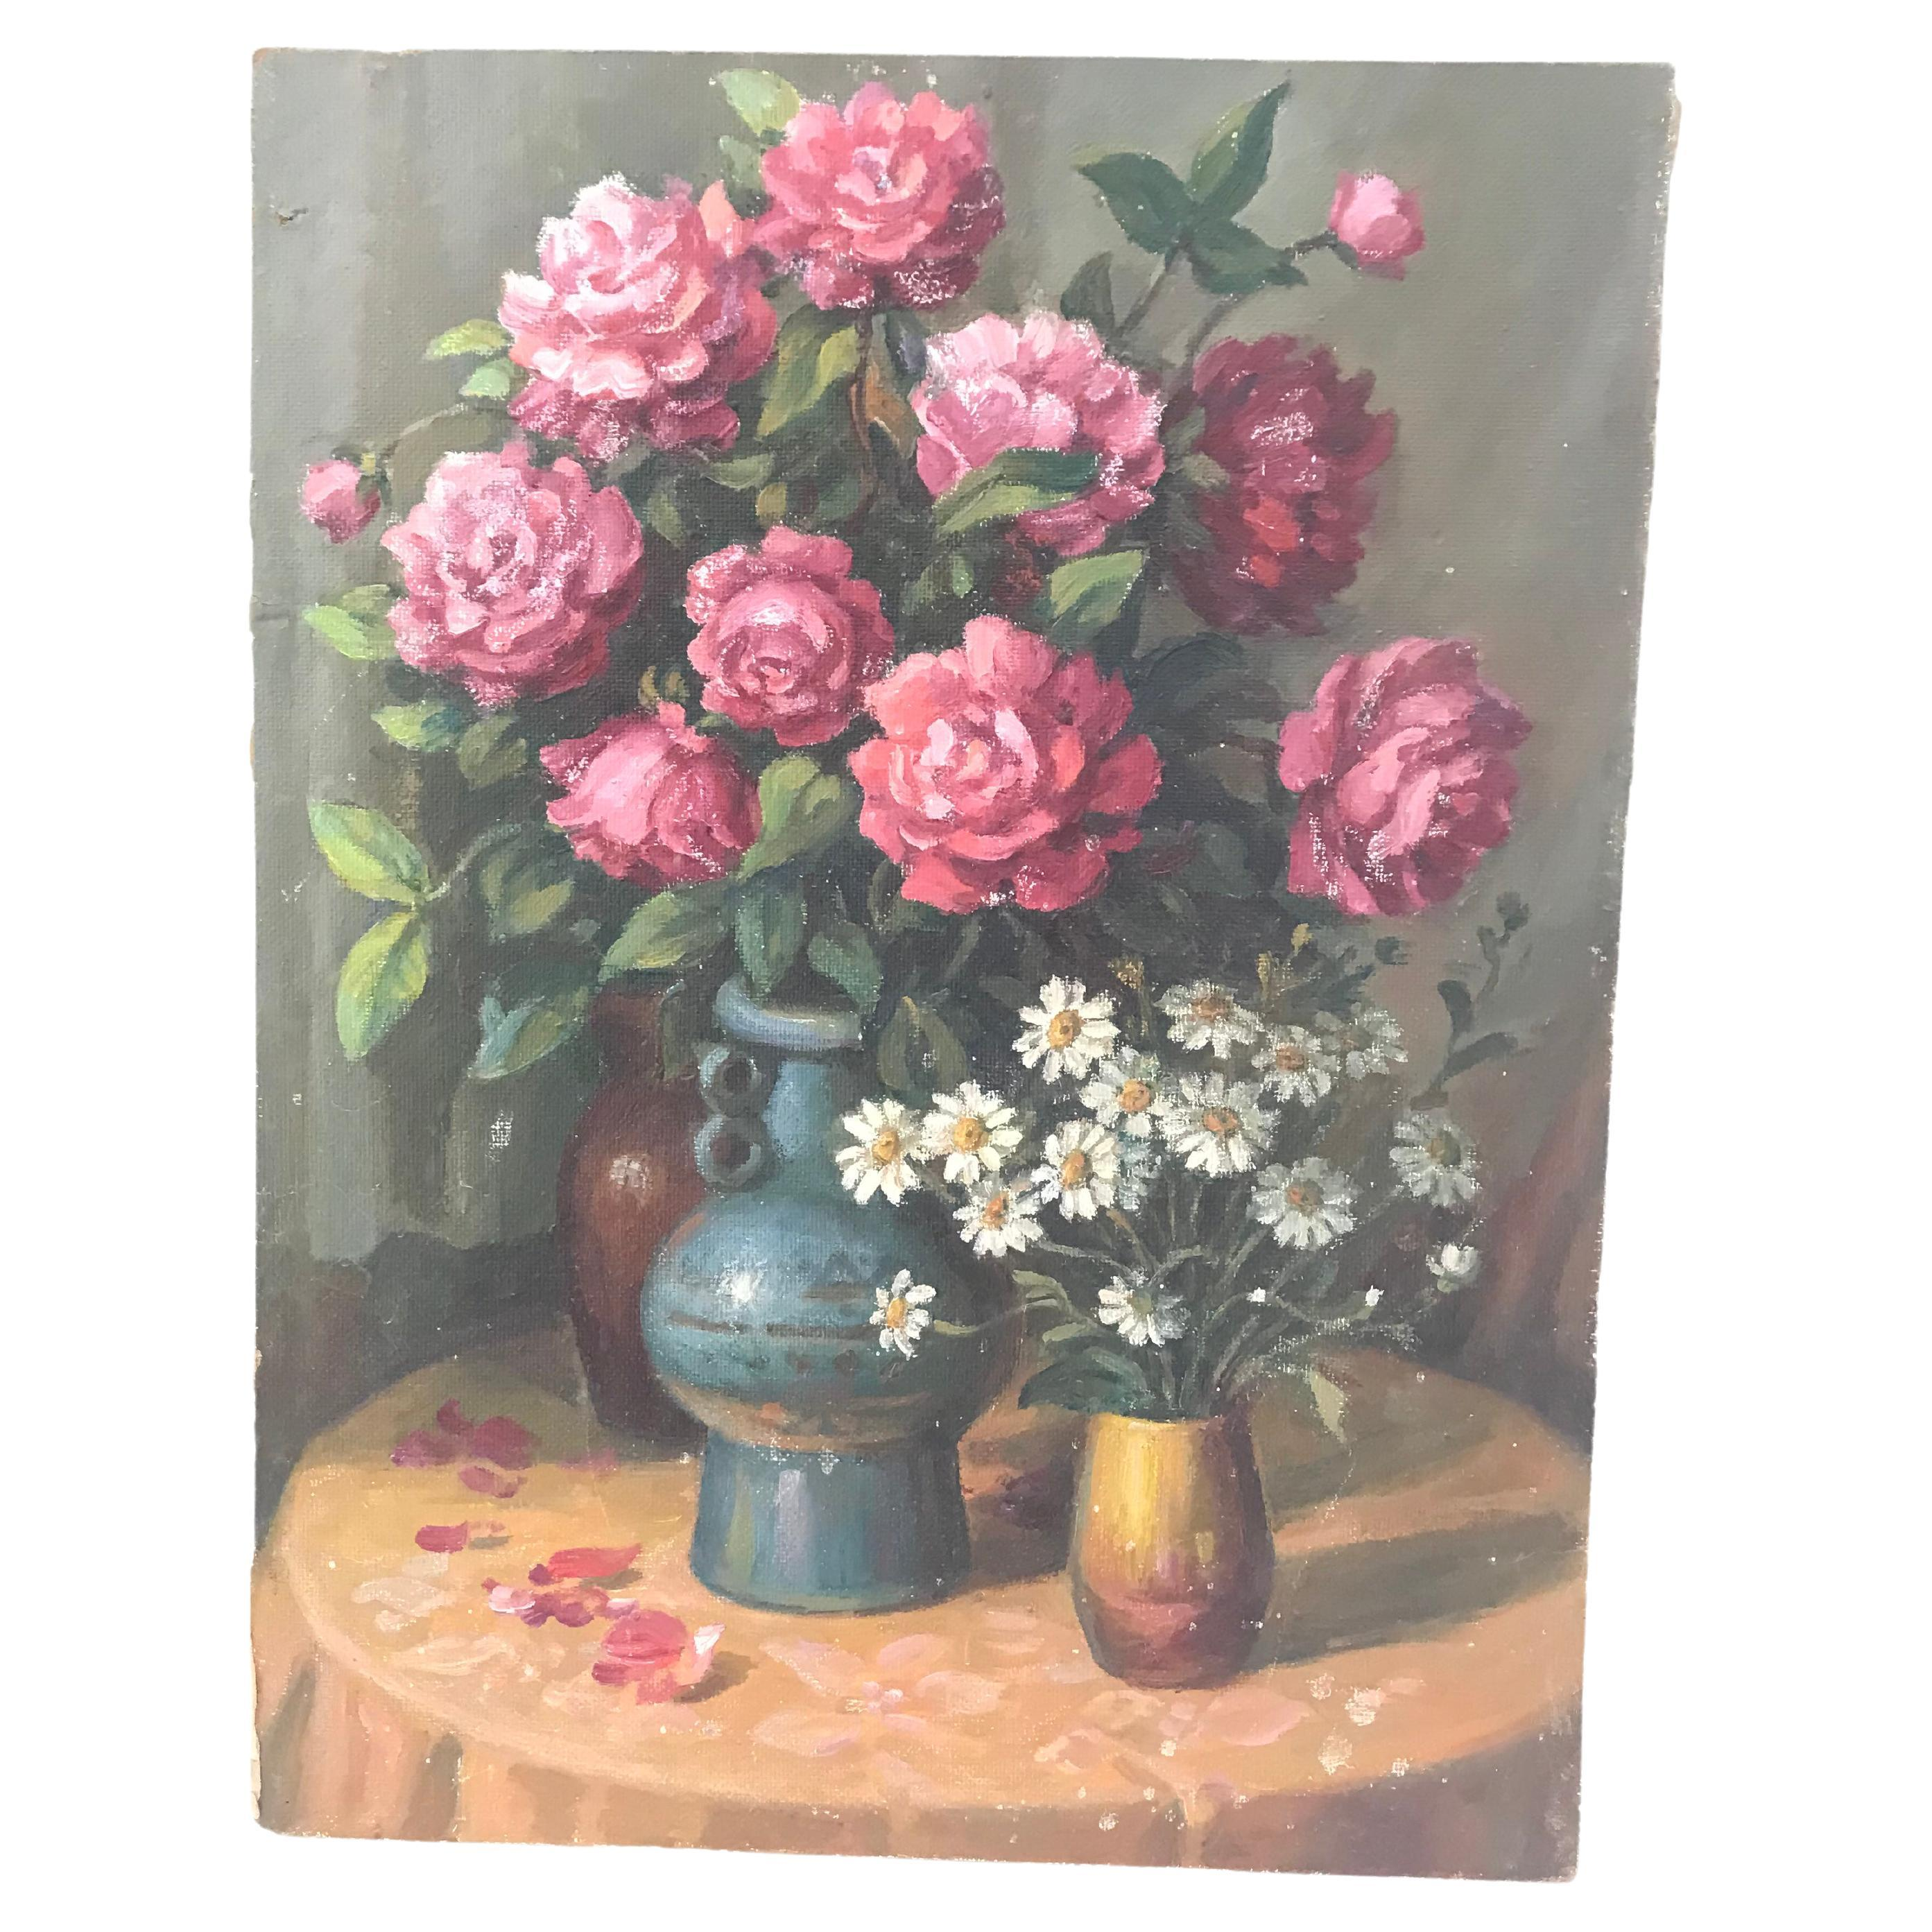 Floral Still Life with Roses Oil on Board